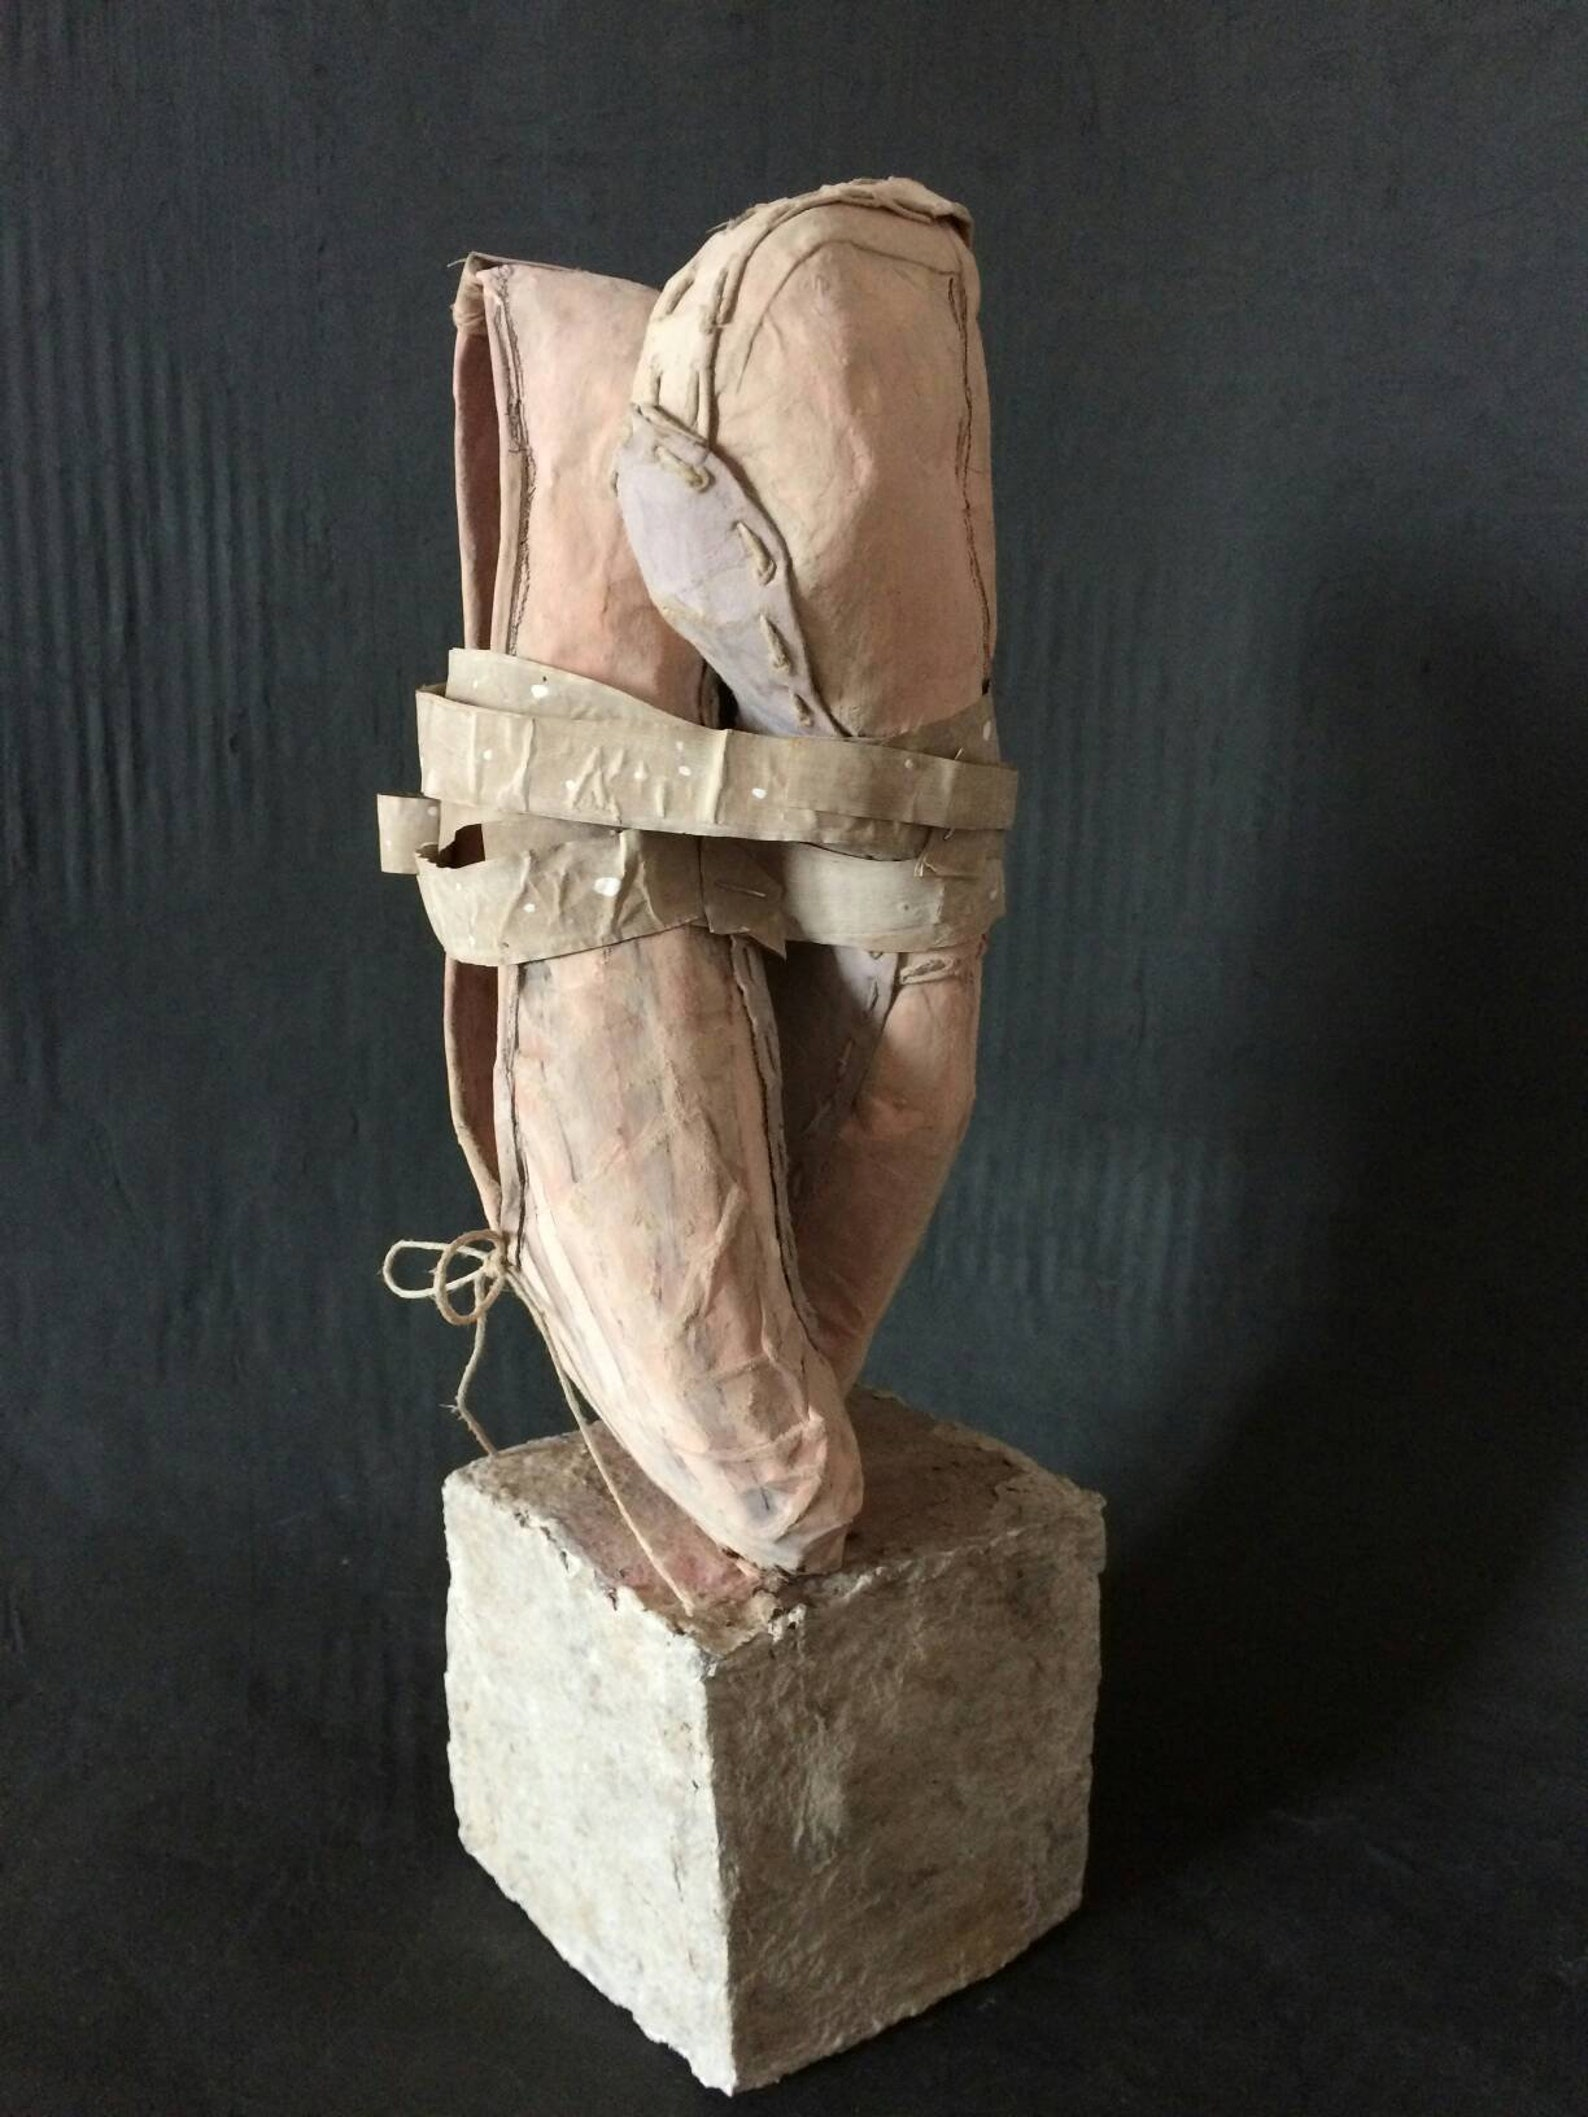 dance with me - handmade ballet shoes made of recycled paper clay and paper mache as an art object sculpture